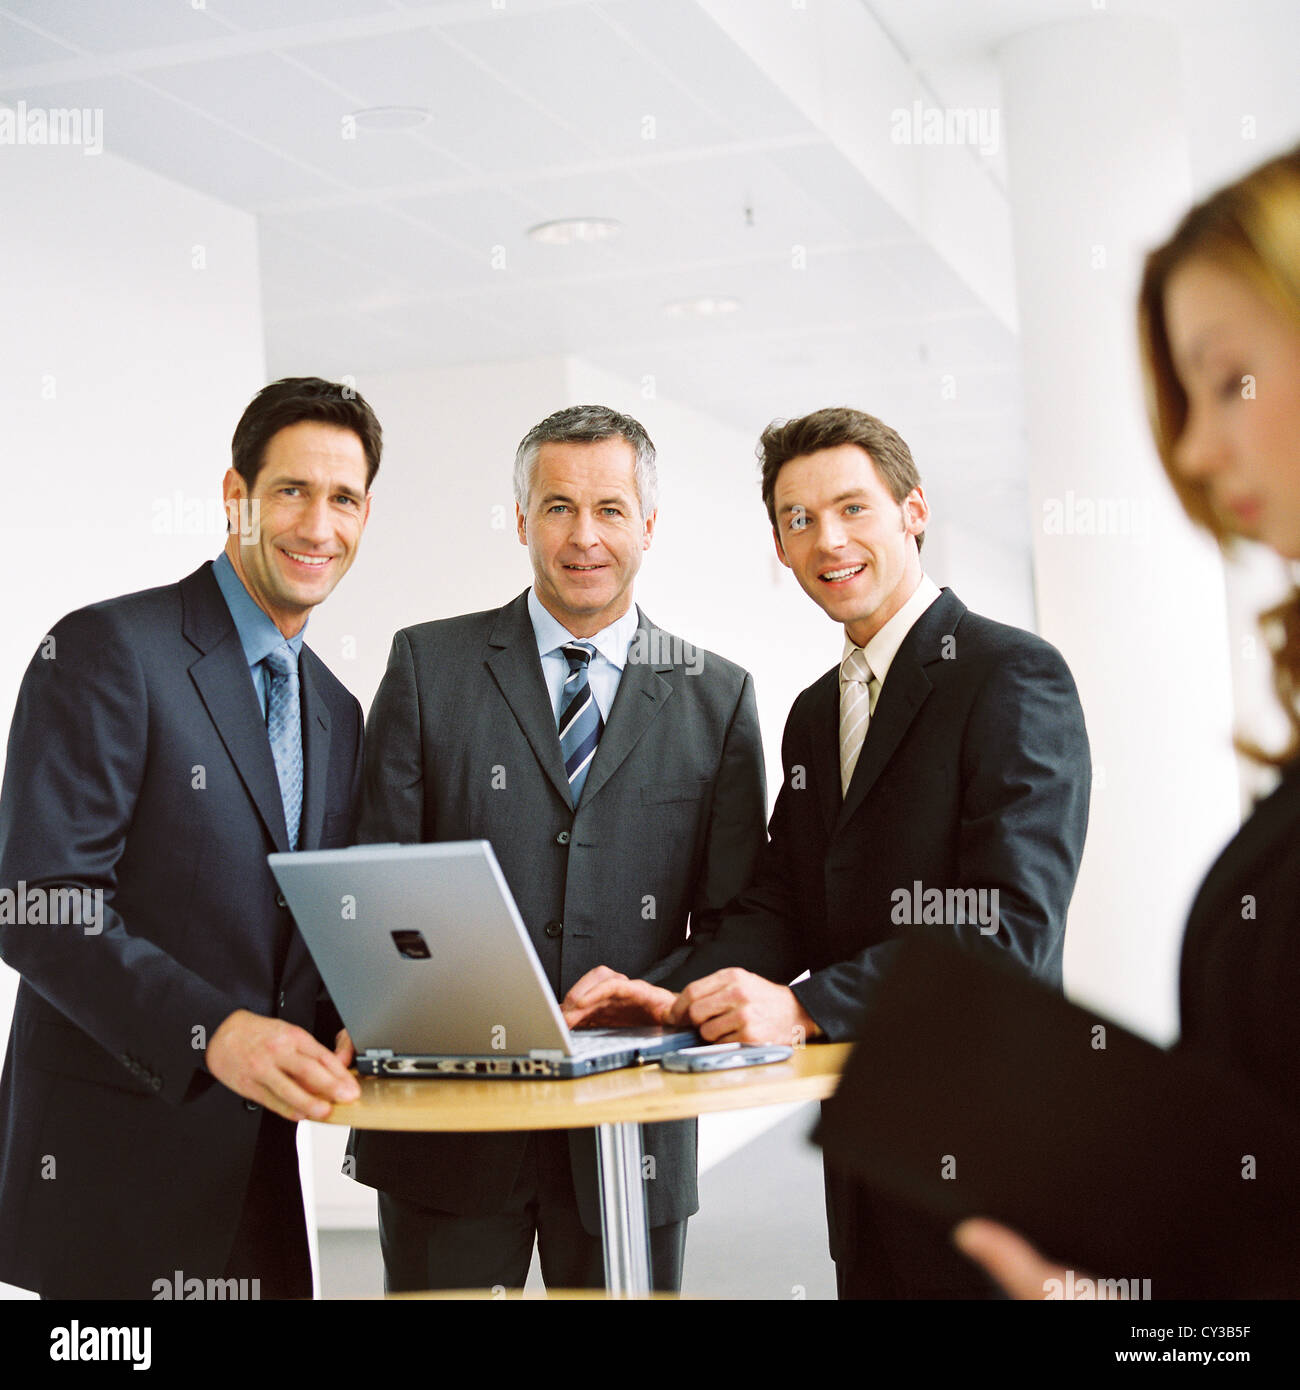 business group people with laptop License free except ads and outdoor billboards - Stock Image